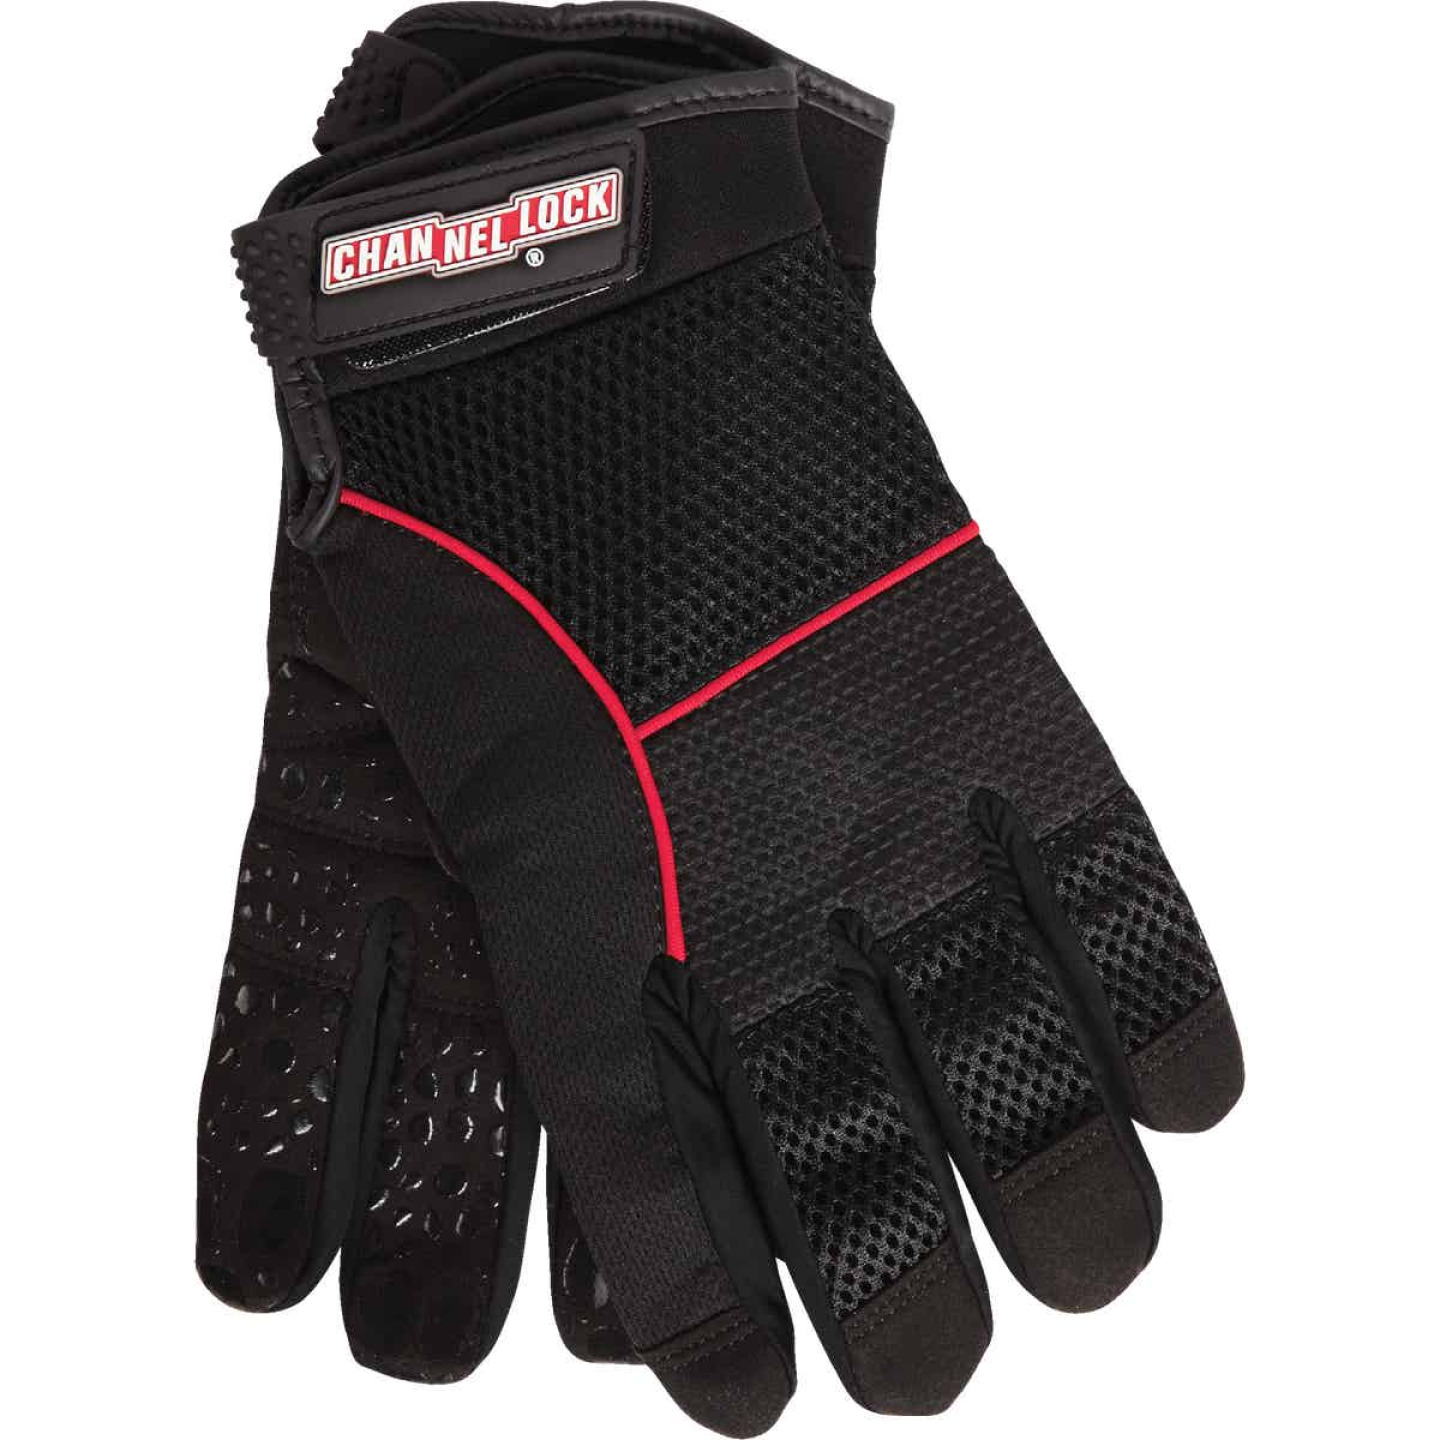 Channellock Men's Large Synthetic Leather Utility Grip High Performance Glove Image 1